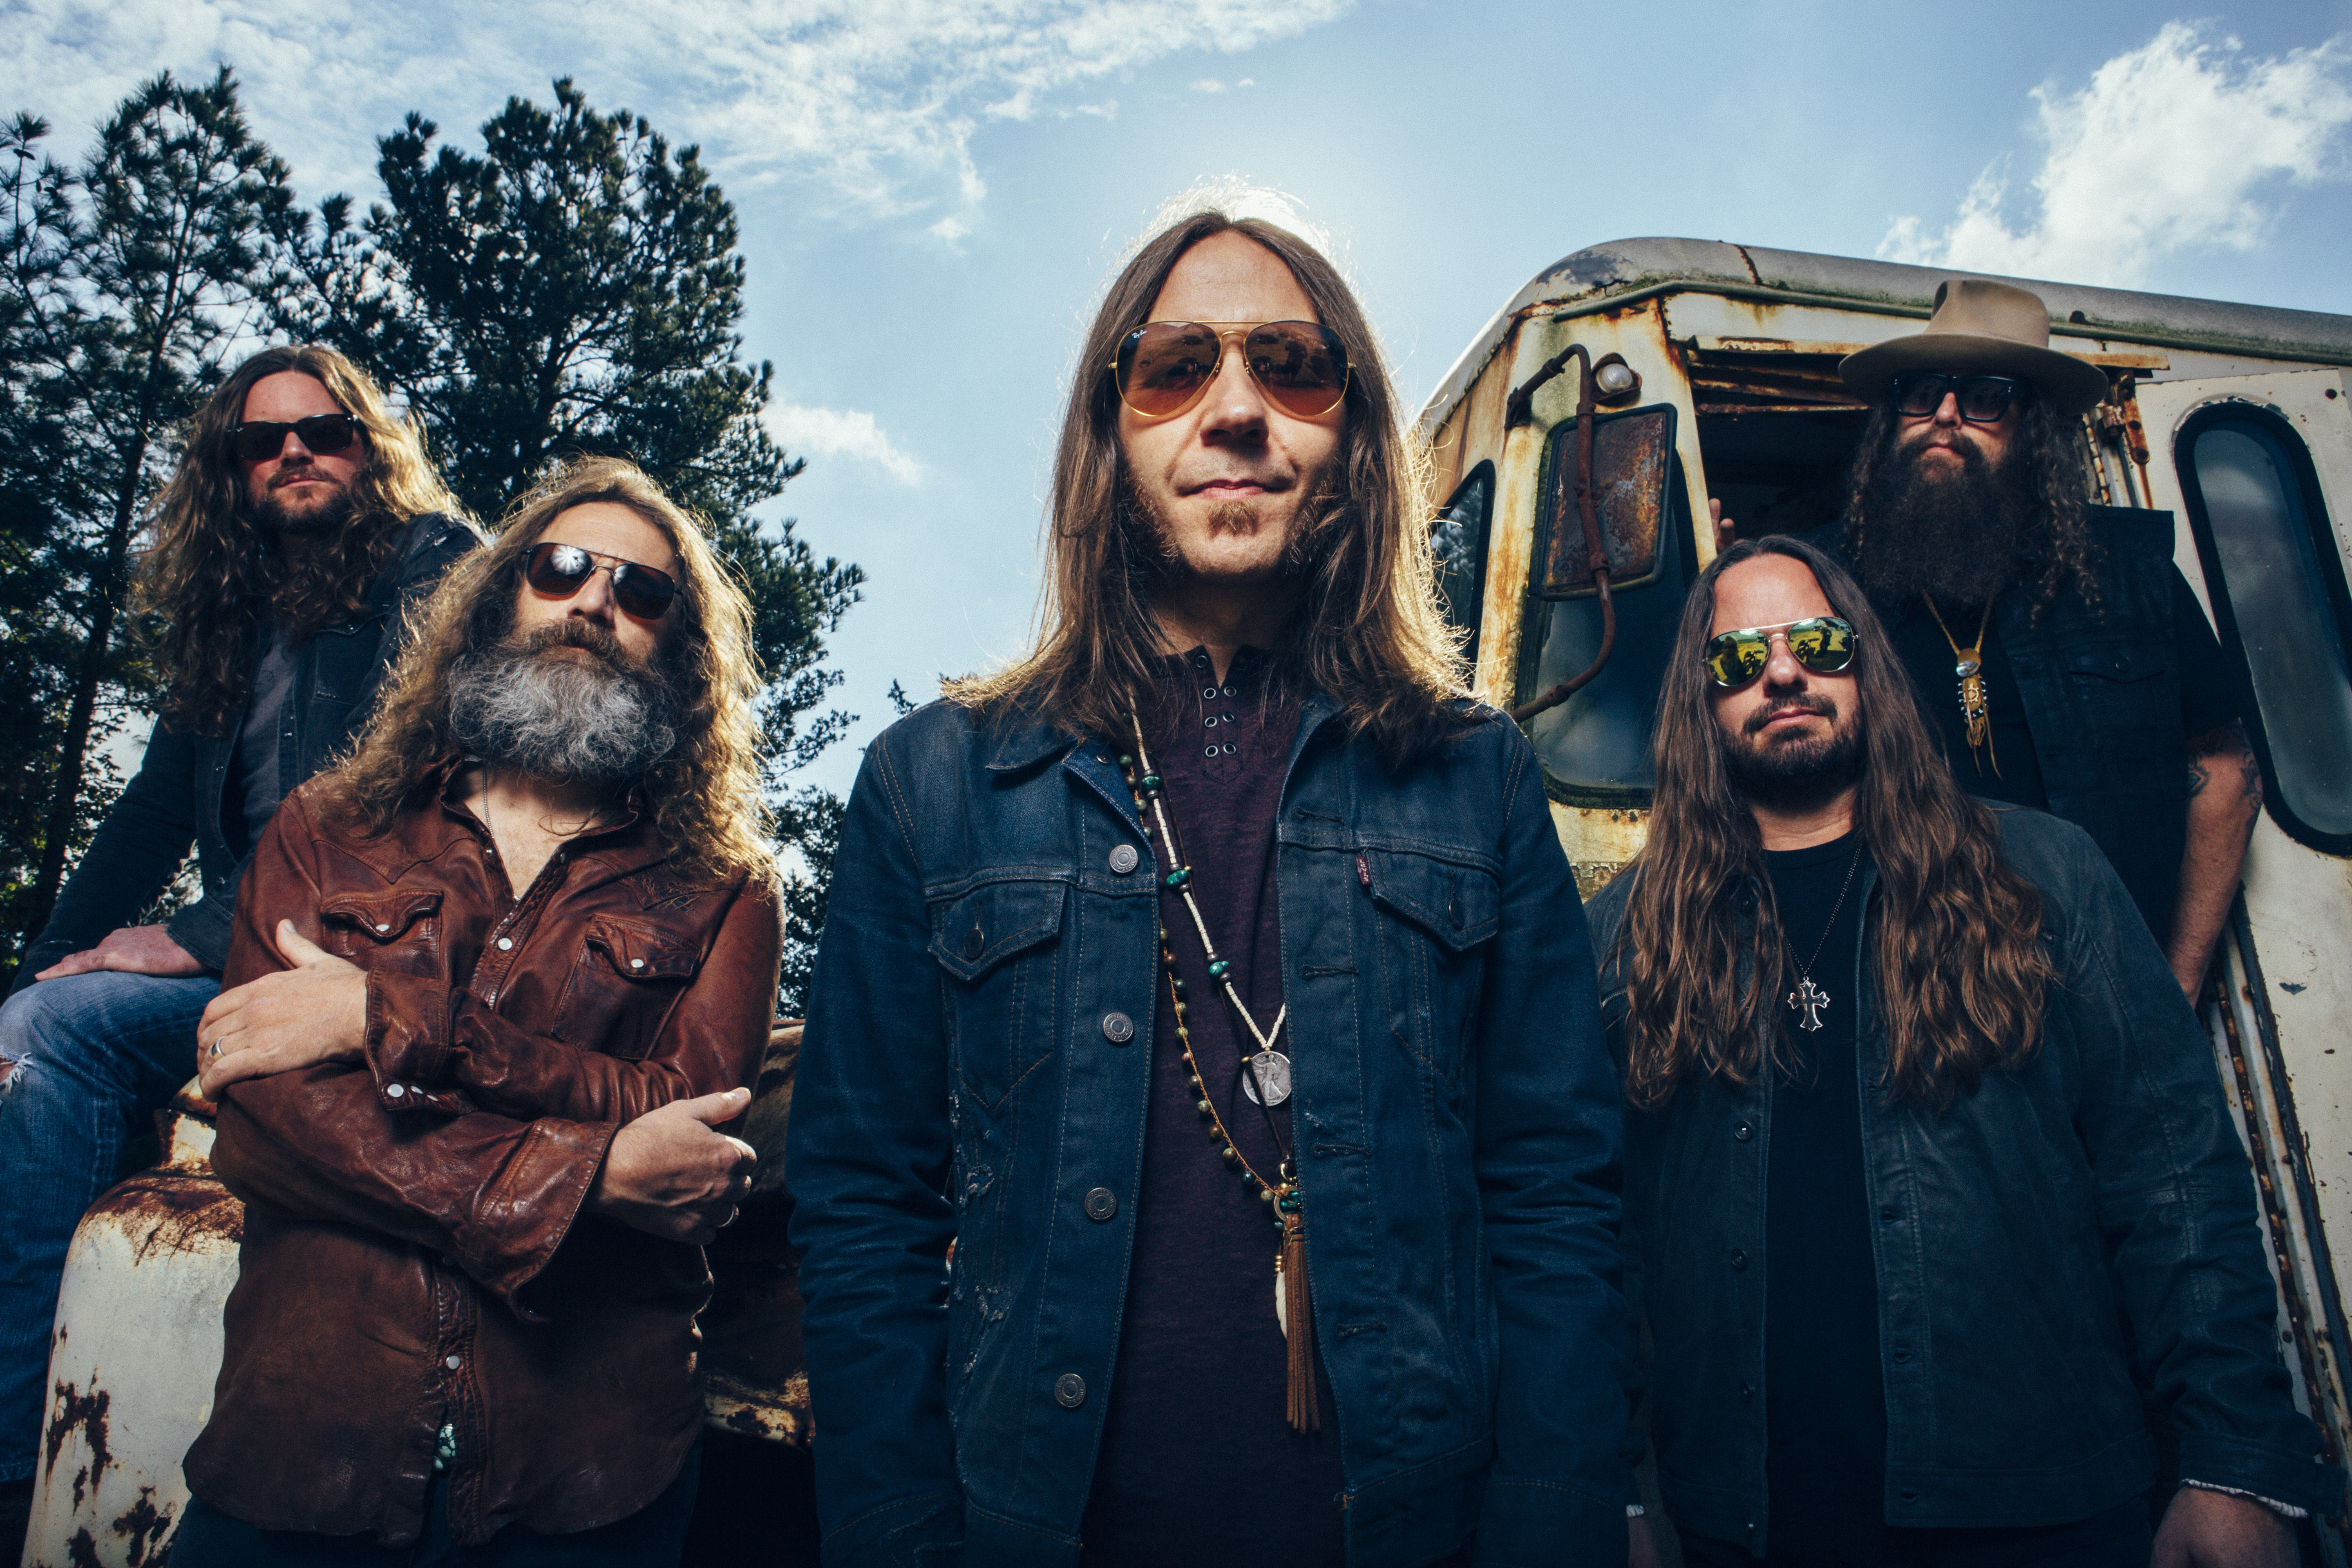 BLACKBERRY SMOKE showcase 'I'll Keep Ramblin' (feat. Robert Randolph)